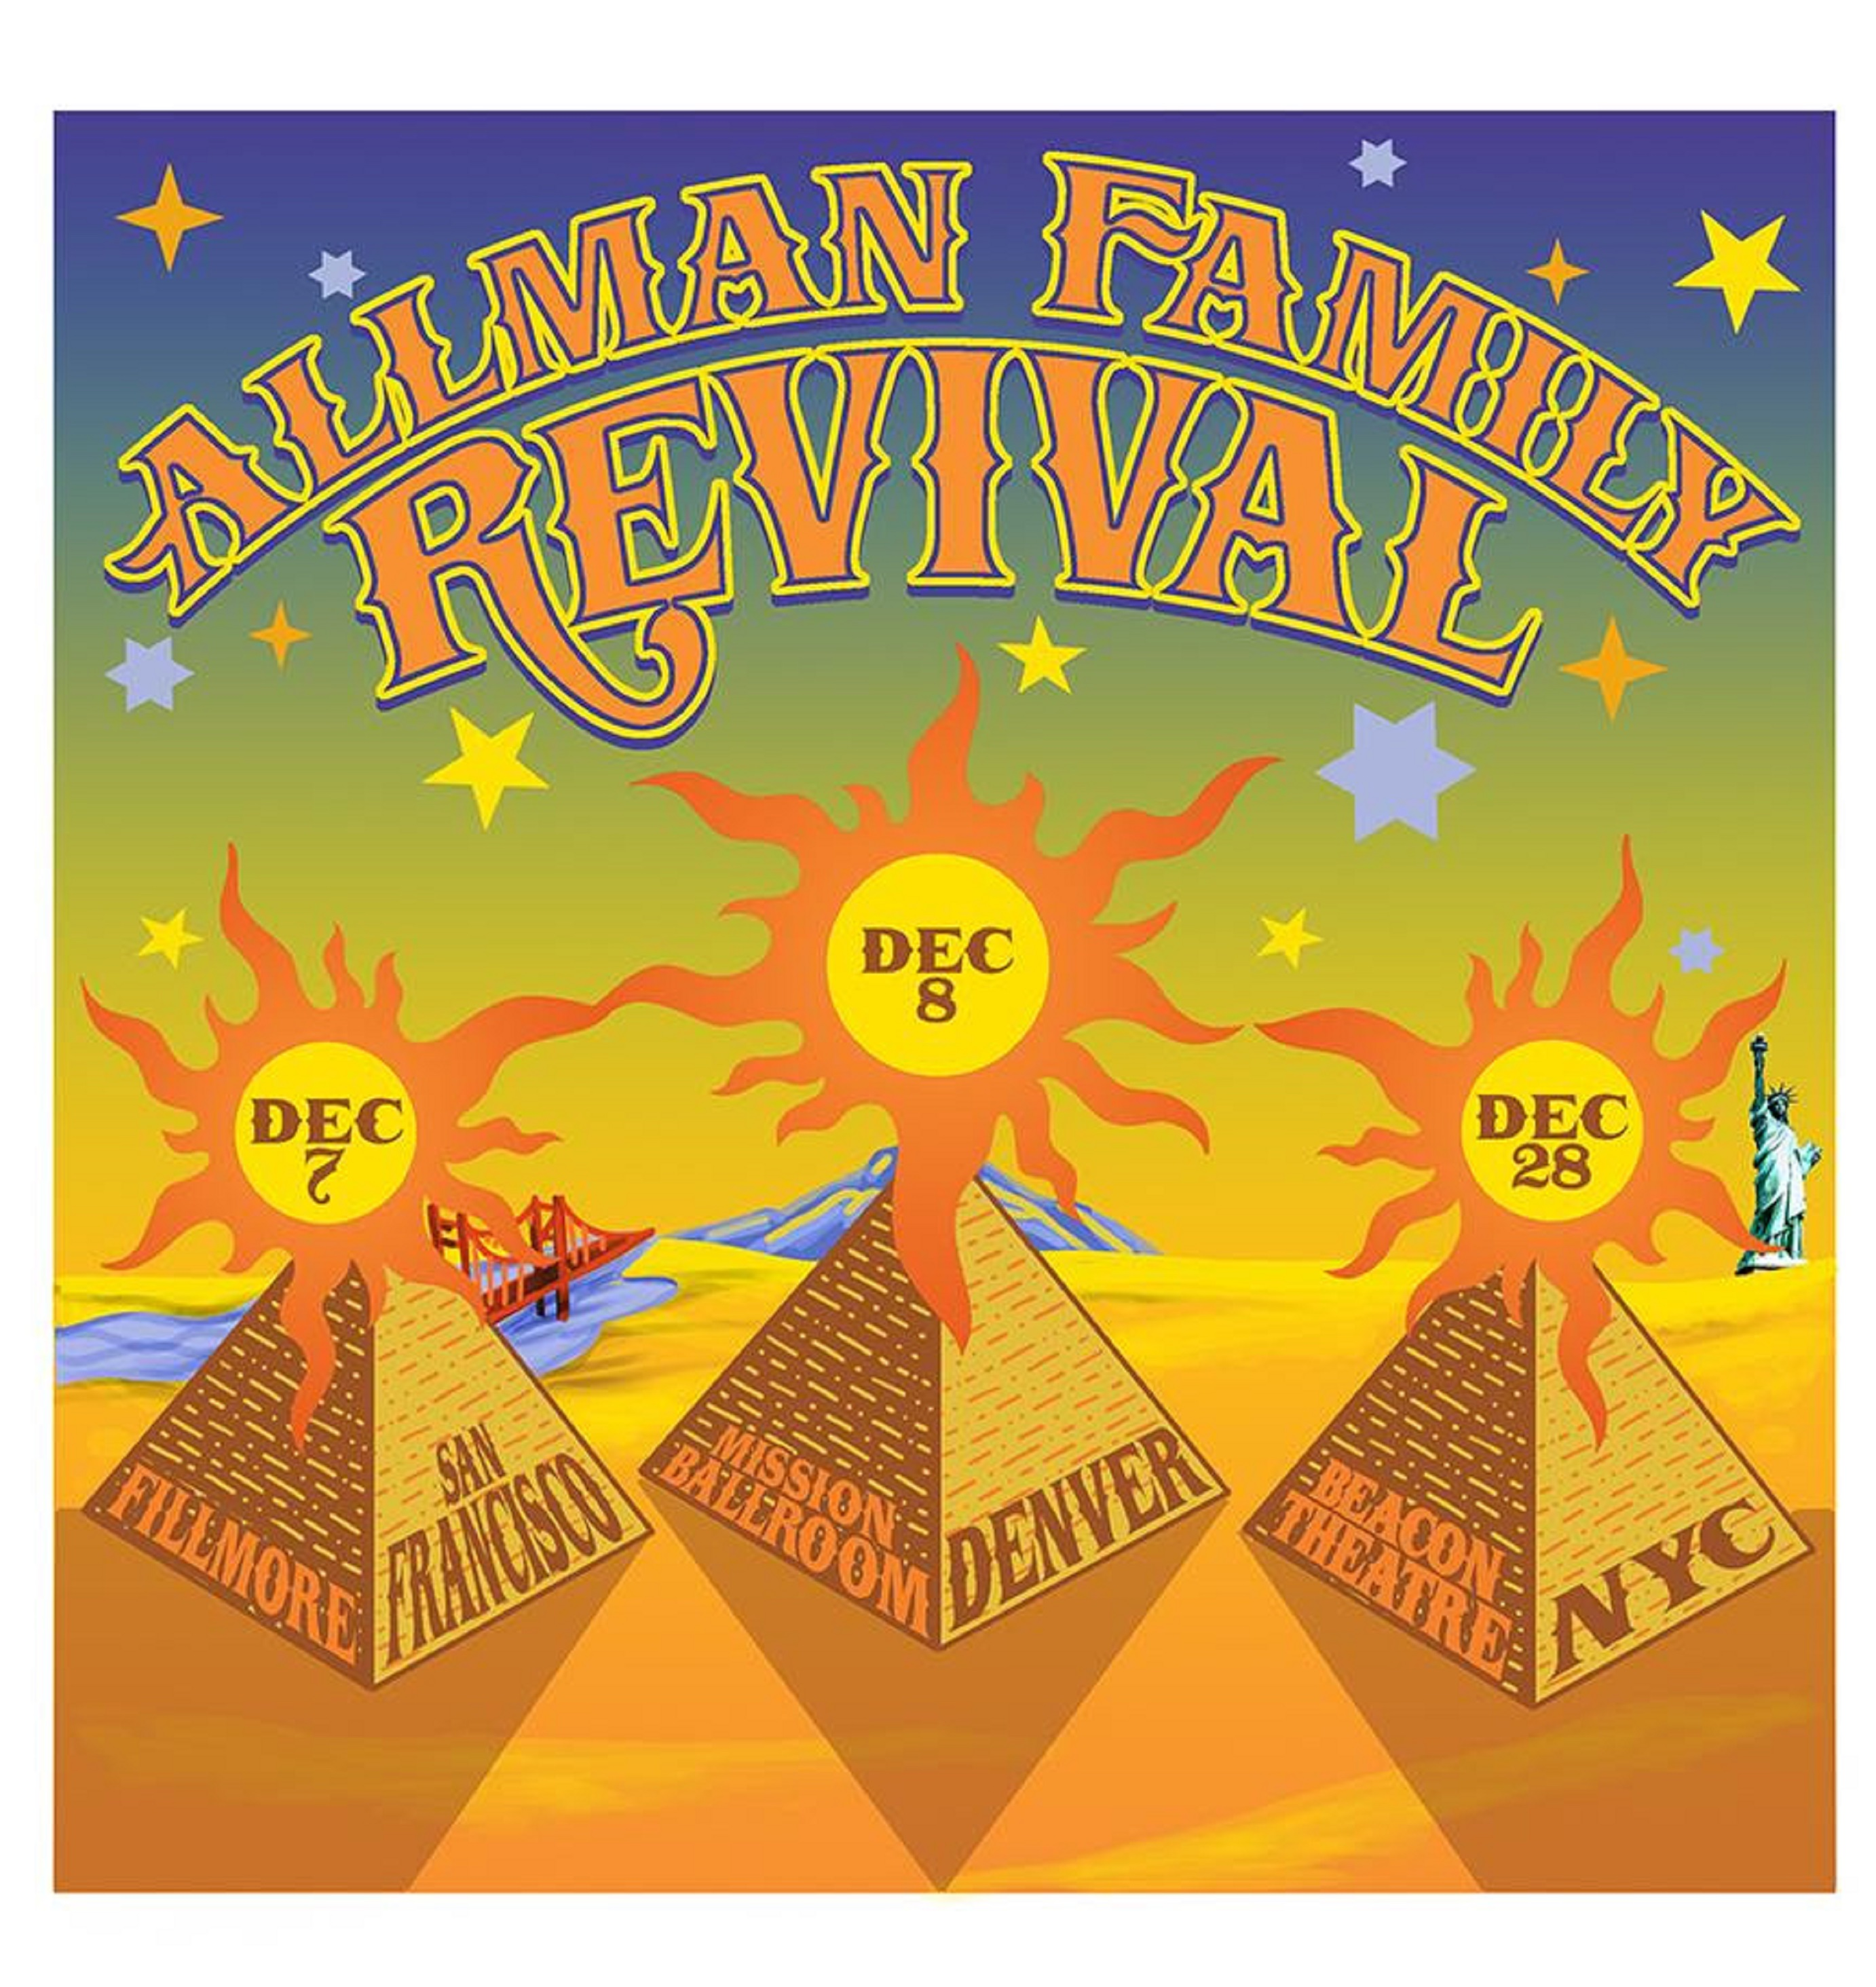 Third Annual Allman Family Revival Announced